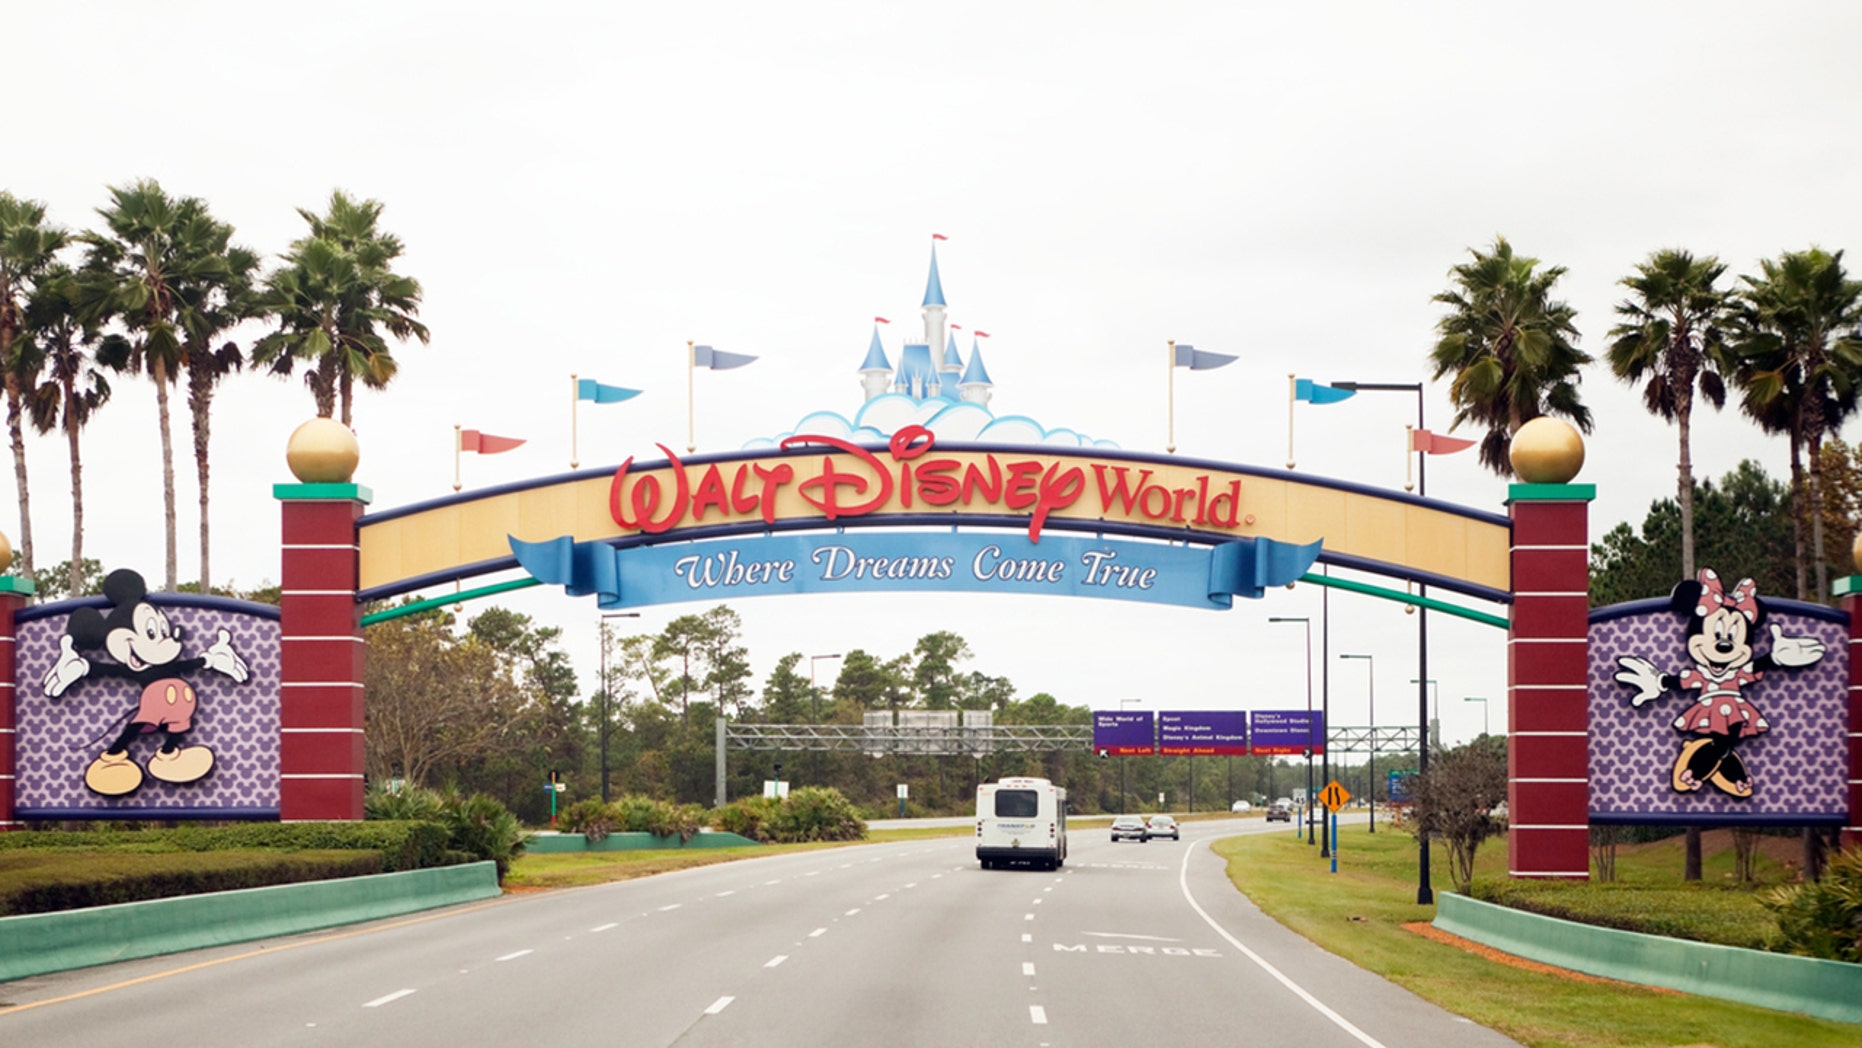 Disney World just released a preview of the upcoming Toy Story Land attraction.